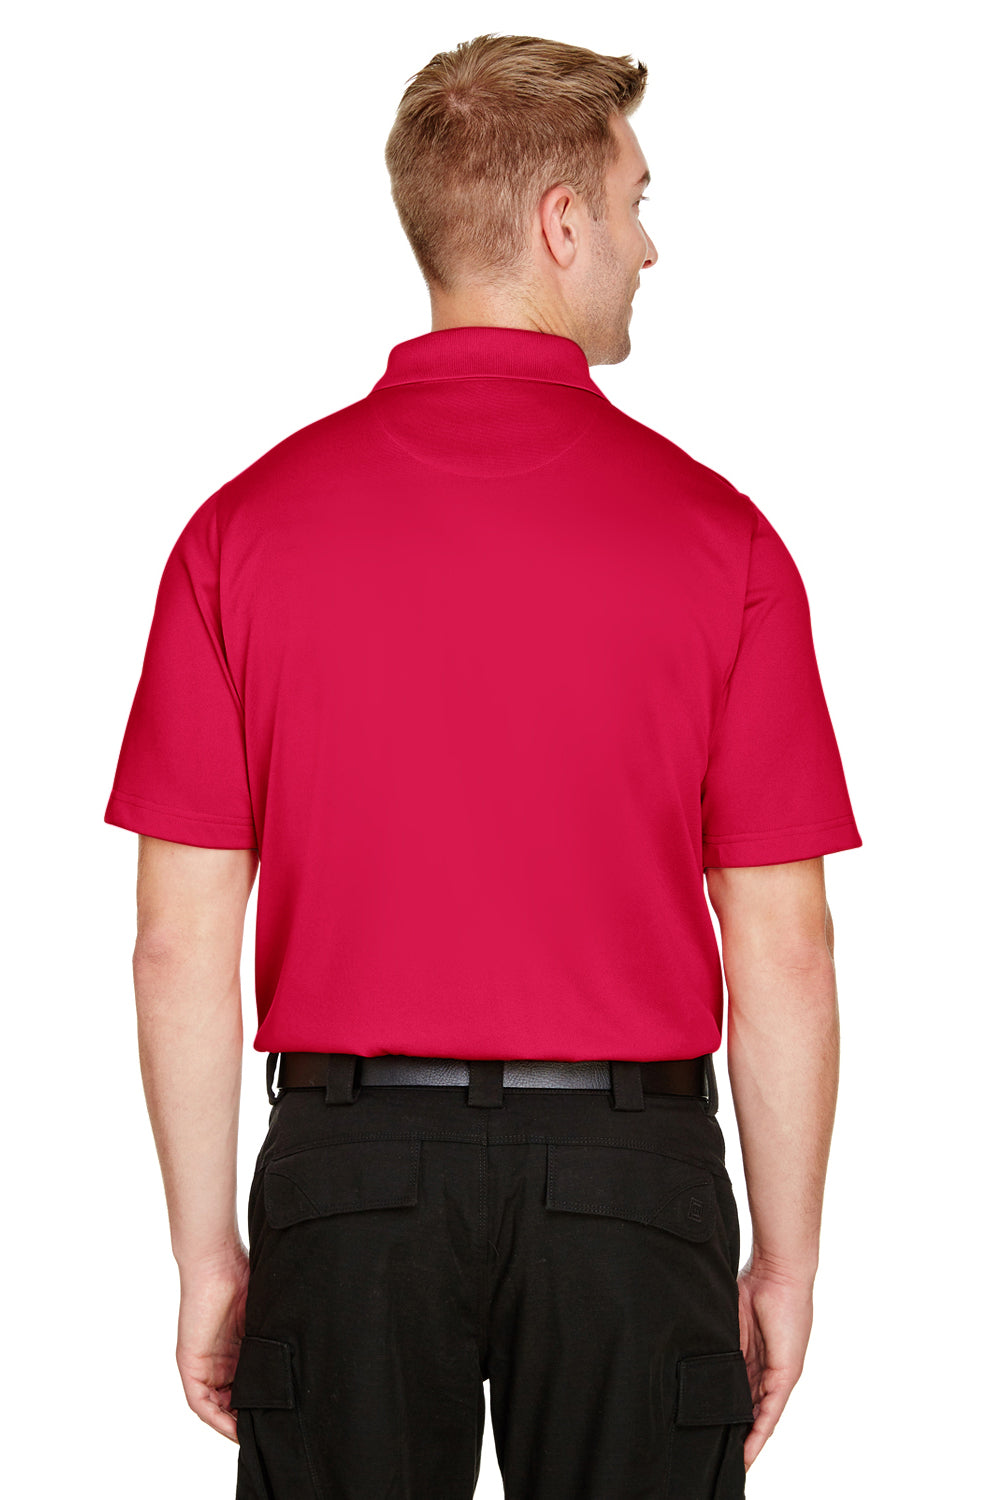 Harriton M348 Mens Advantage Performance Moisture Wicking Short Sleeve Polo Shirt Red Back